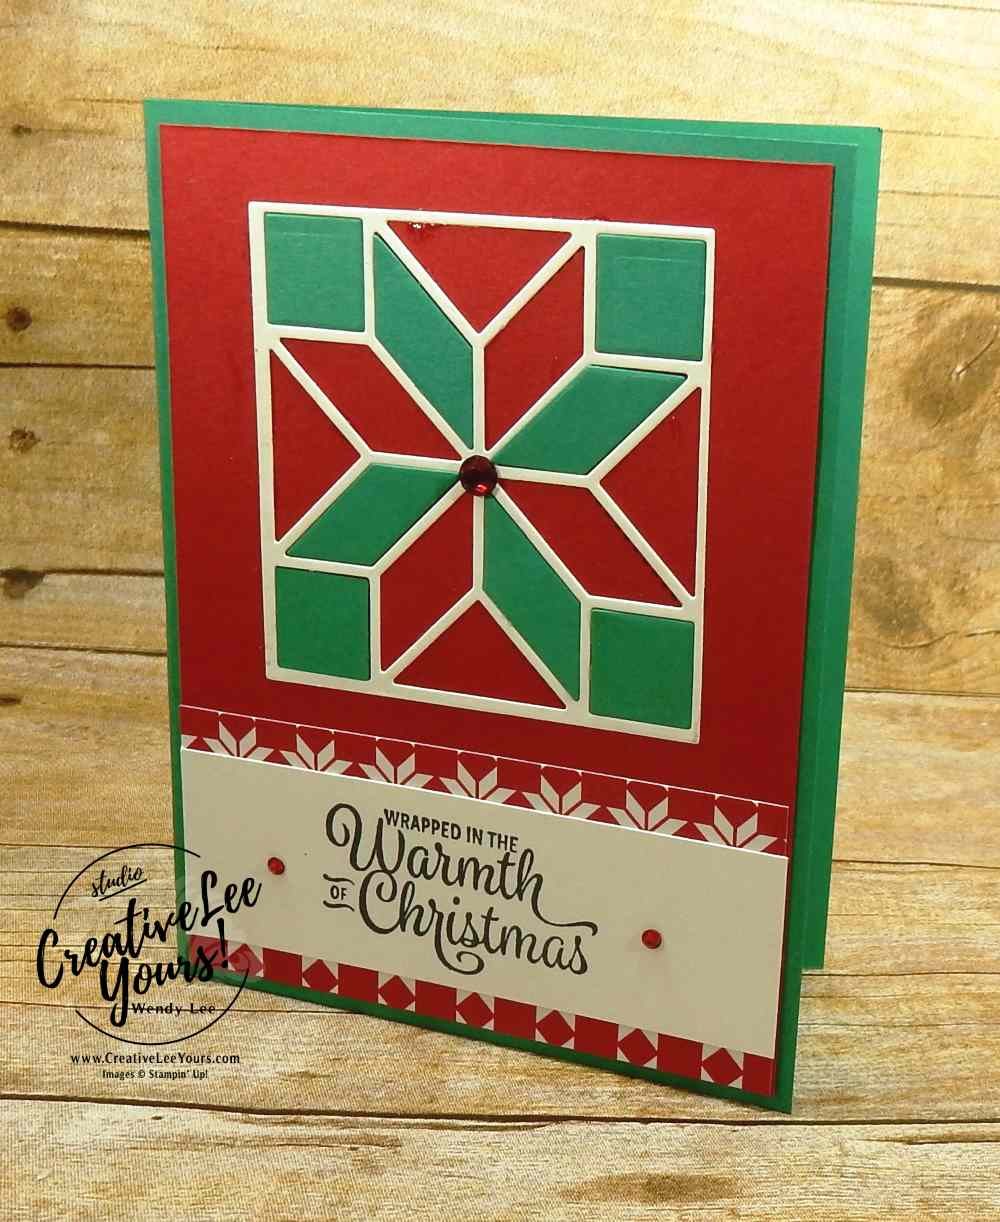 Warmth of Christmas, stampin up, wendy lee,#creativeleeyours, creativelyyours, handmade, stamping,quilt builder framelits, snowflake sentiments stamp set, christmas card, diemonds team swap